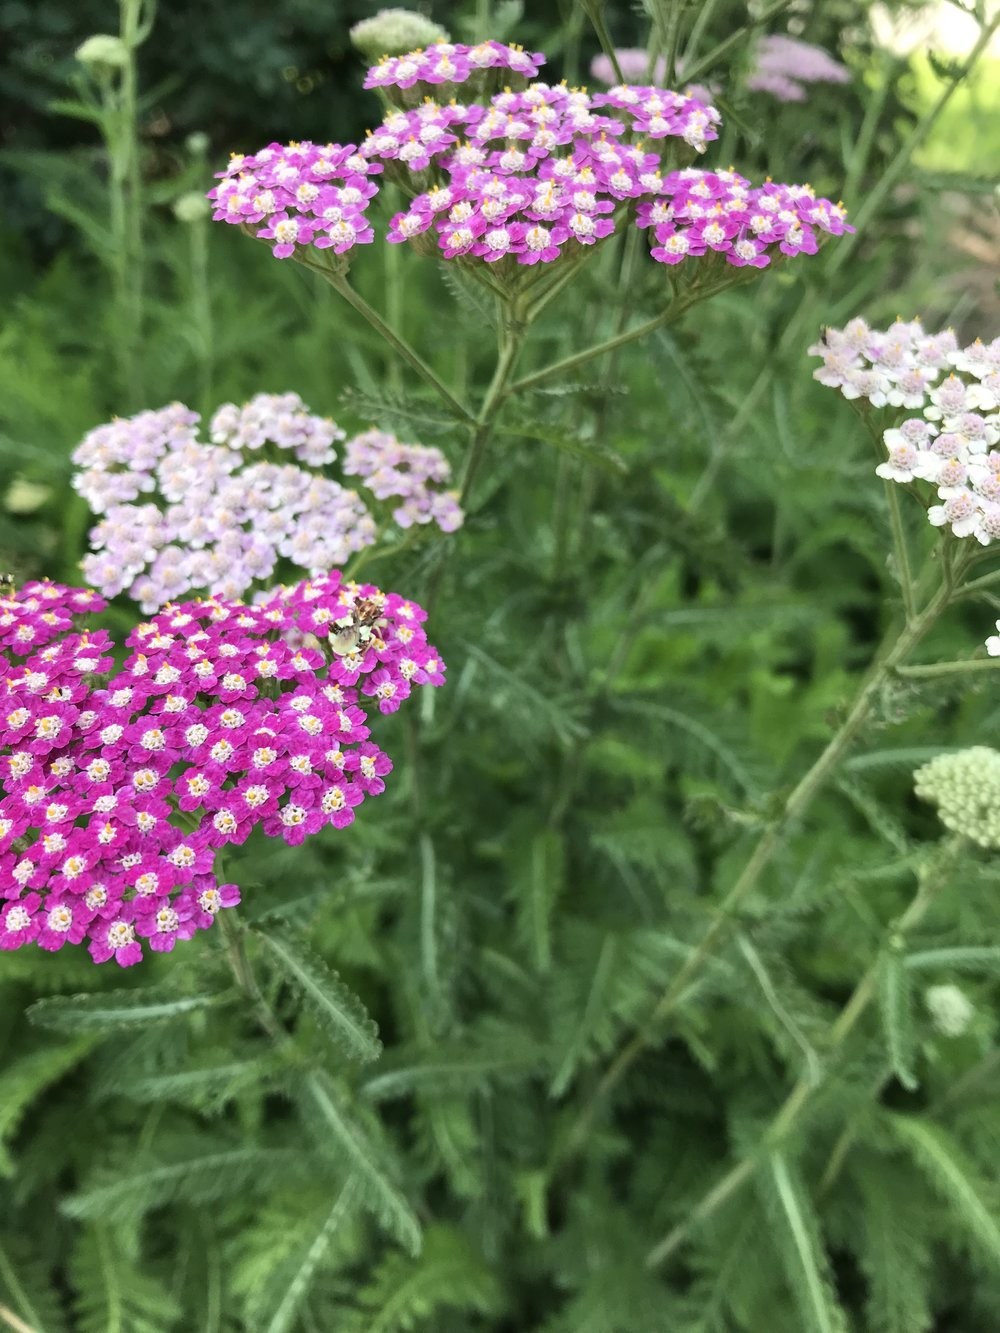 Yarrow - For COLDS, SPICE, AND WOUND-HEALING